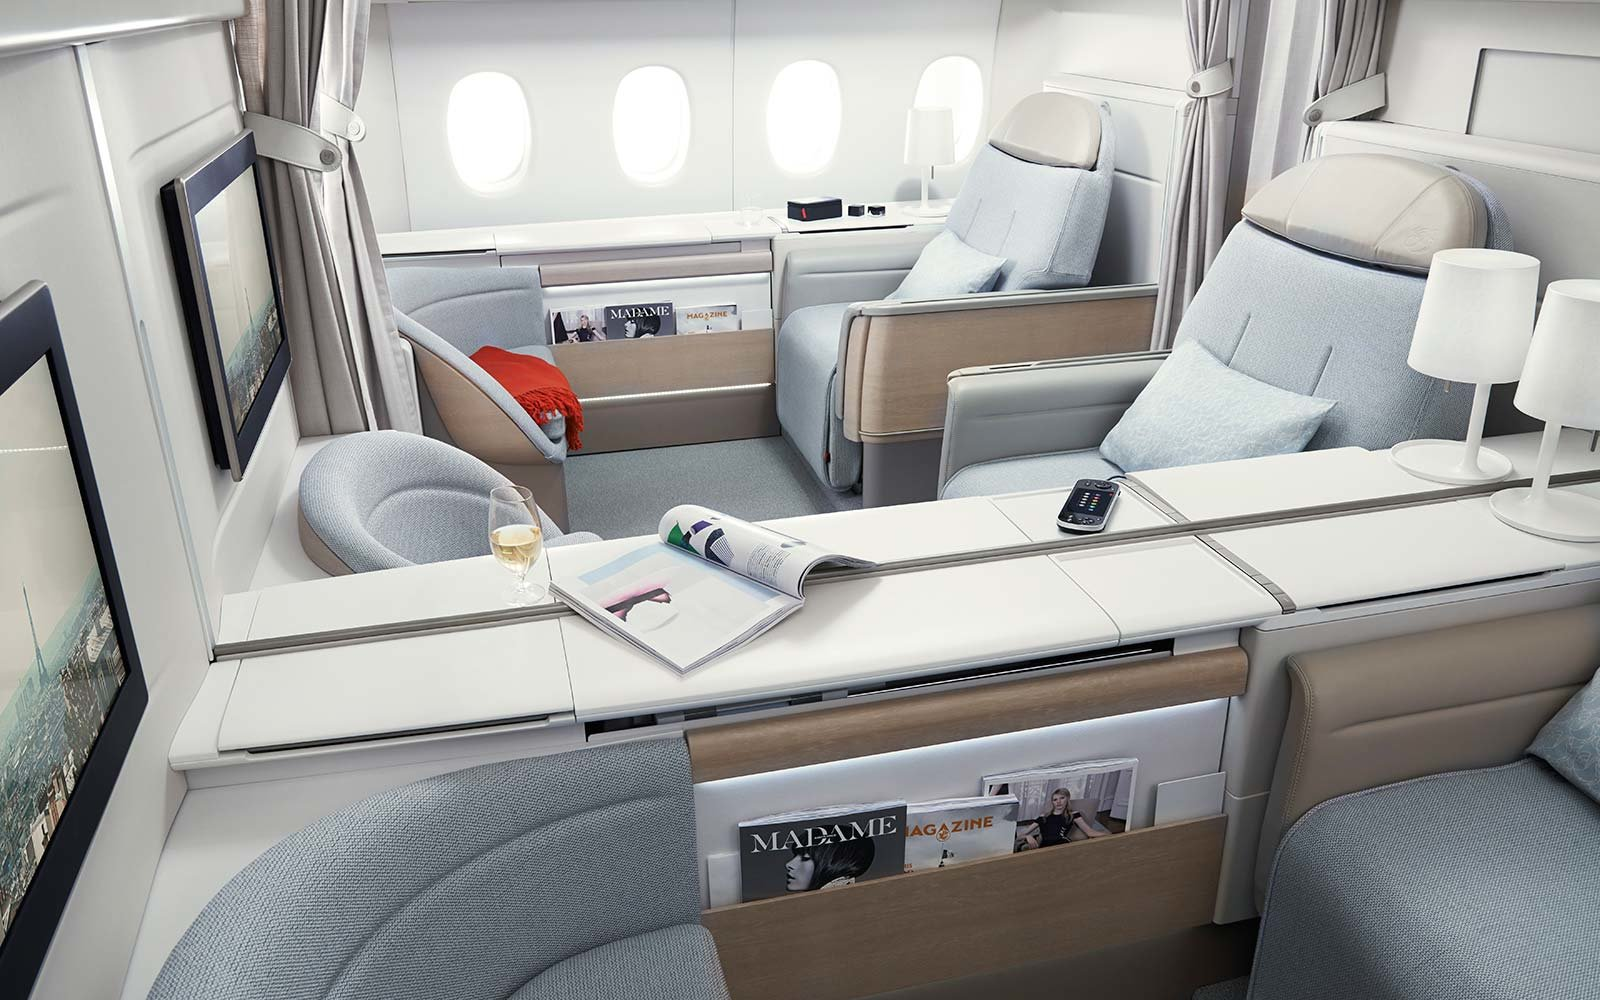 First Class Flights To London From The West Coast Are